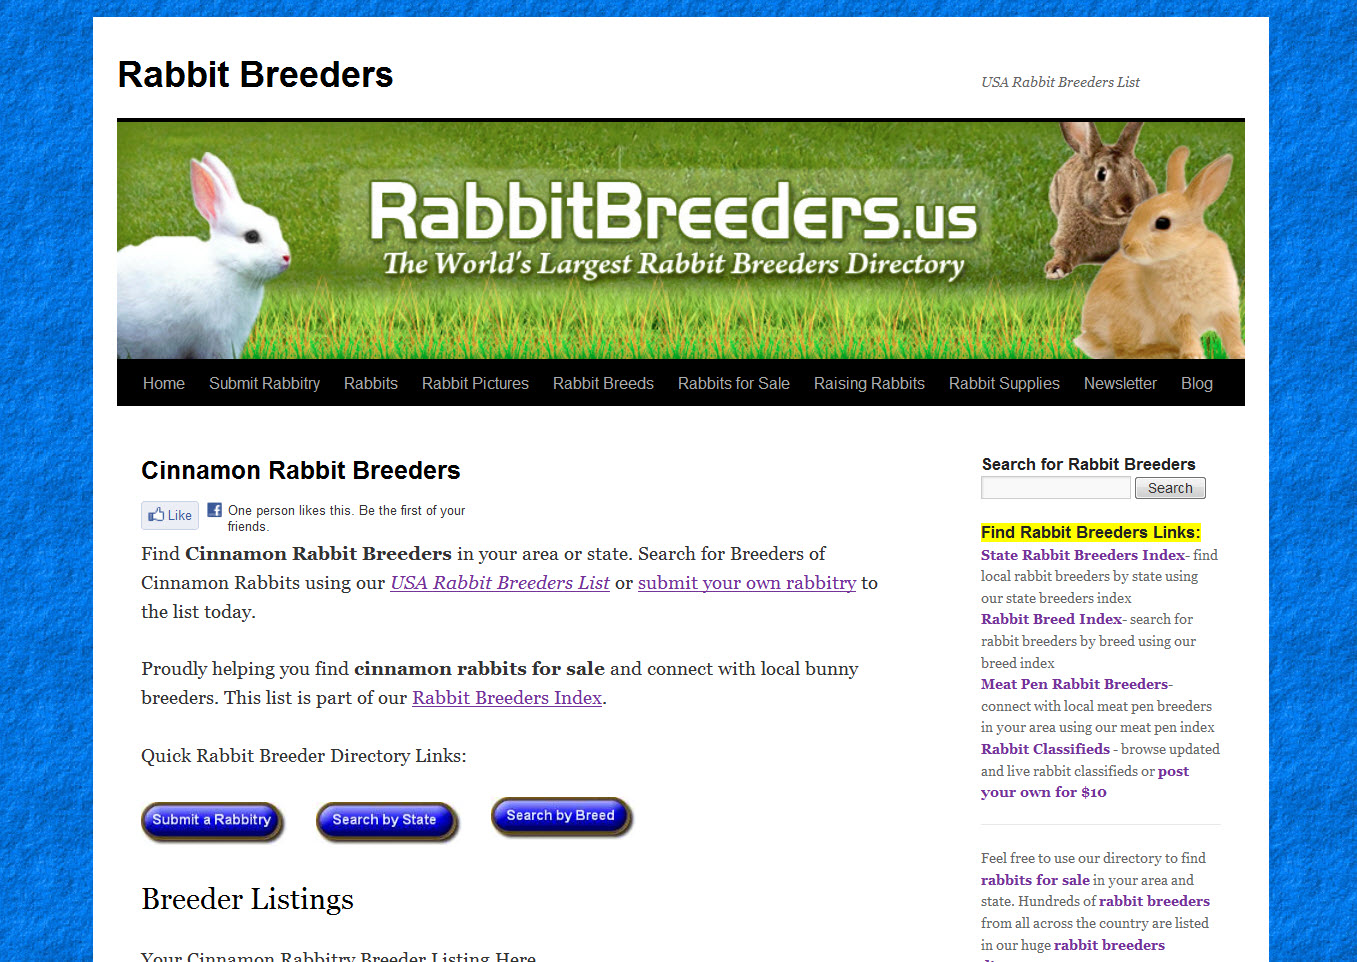 Cinnamon Rabbit Breeders